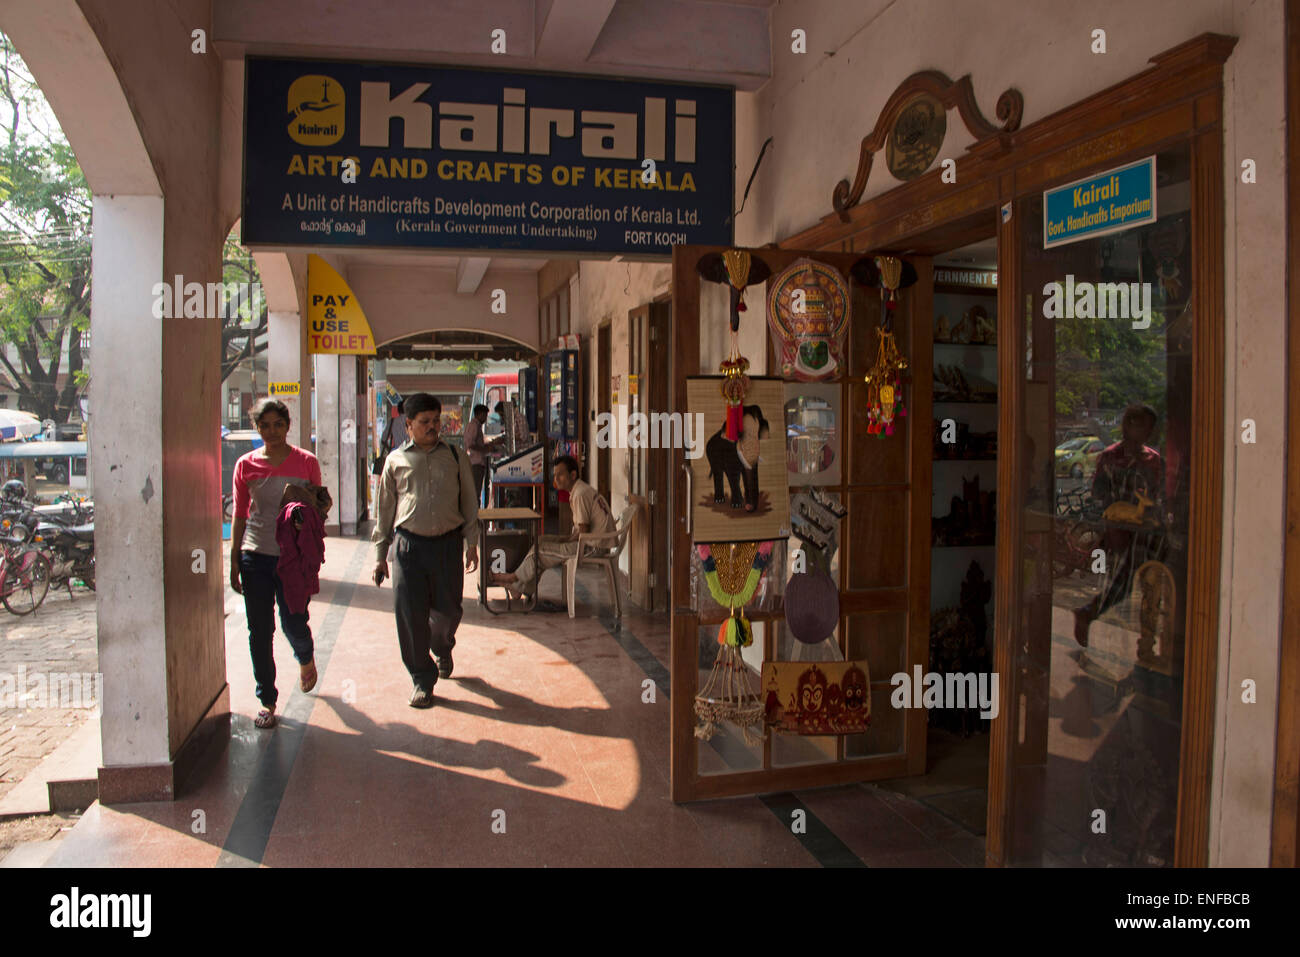 Tourists Approaching A Souvenir Shop Of Arts And Crafts Of Kerala In